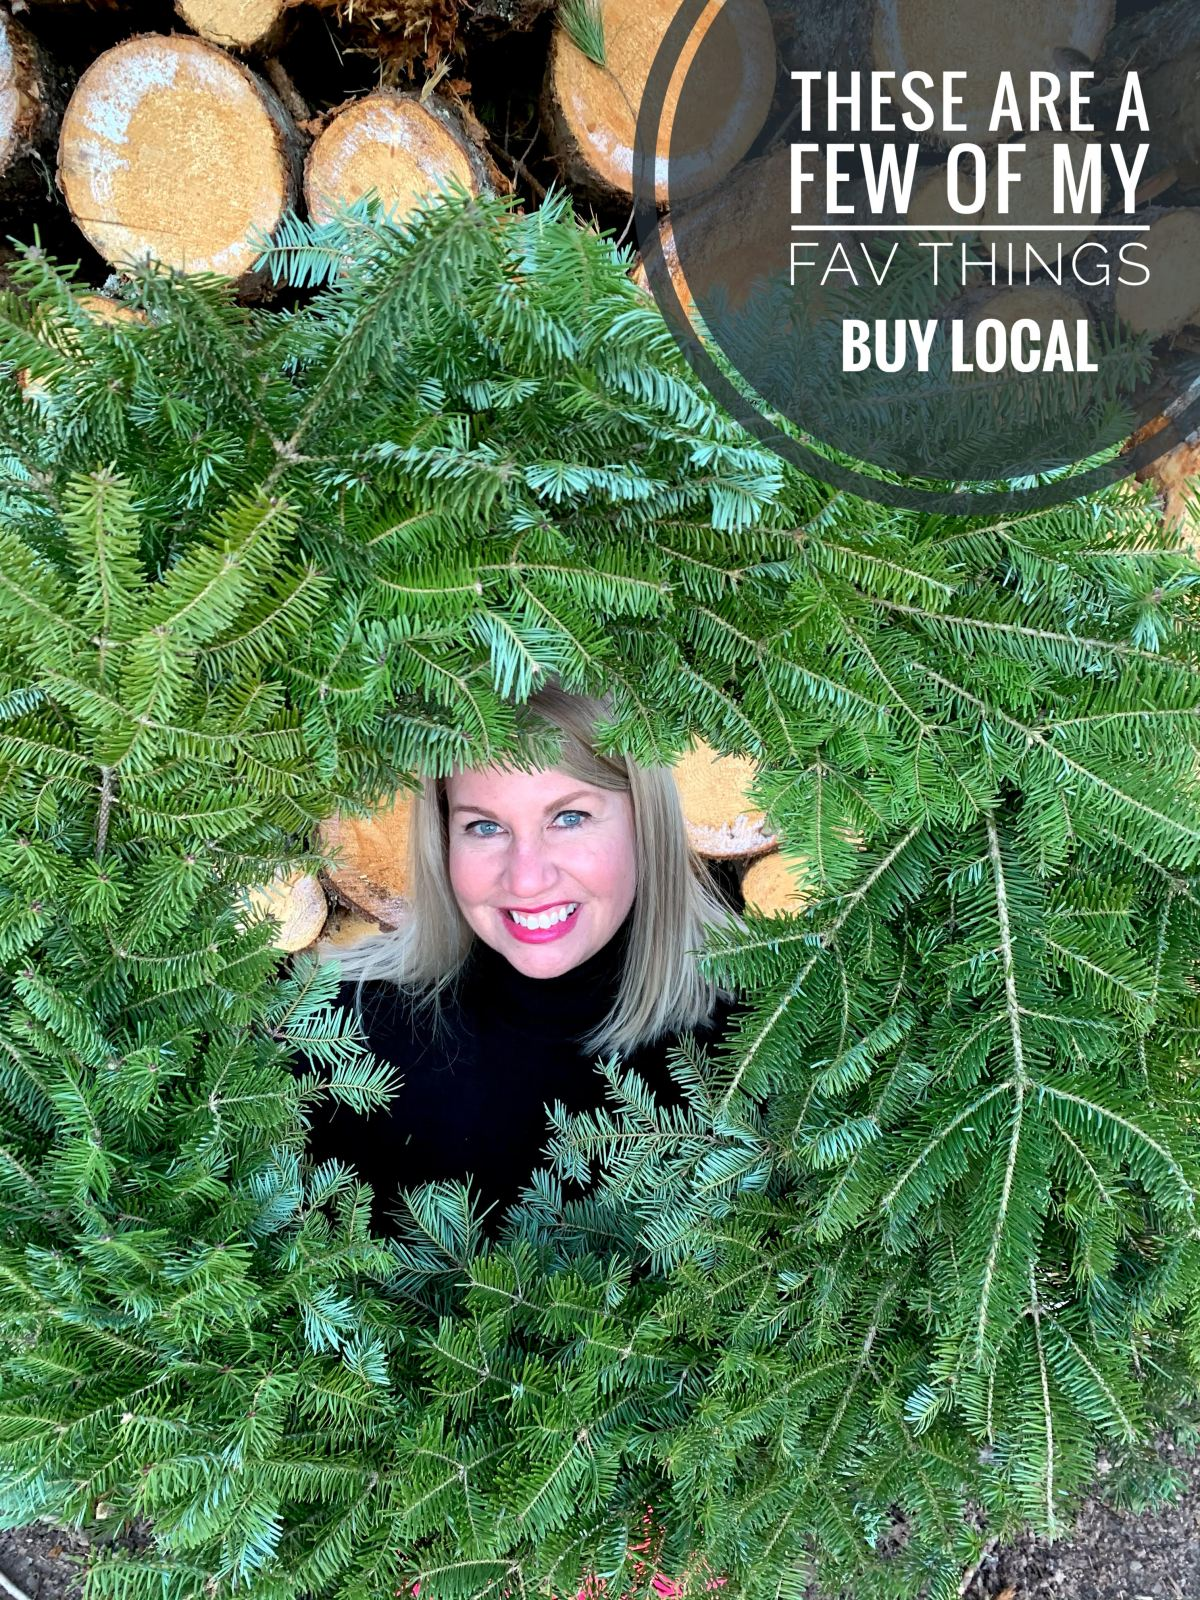 These are a few of my fav things! The Christmas, buy local, edition.